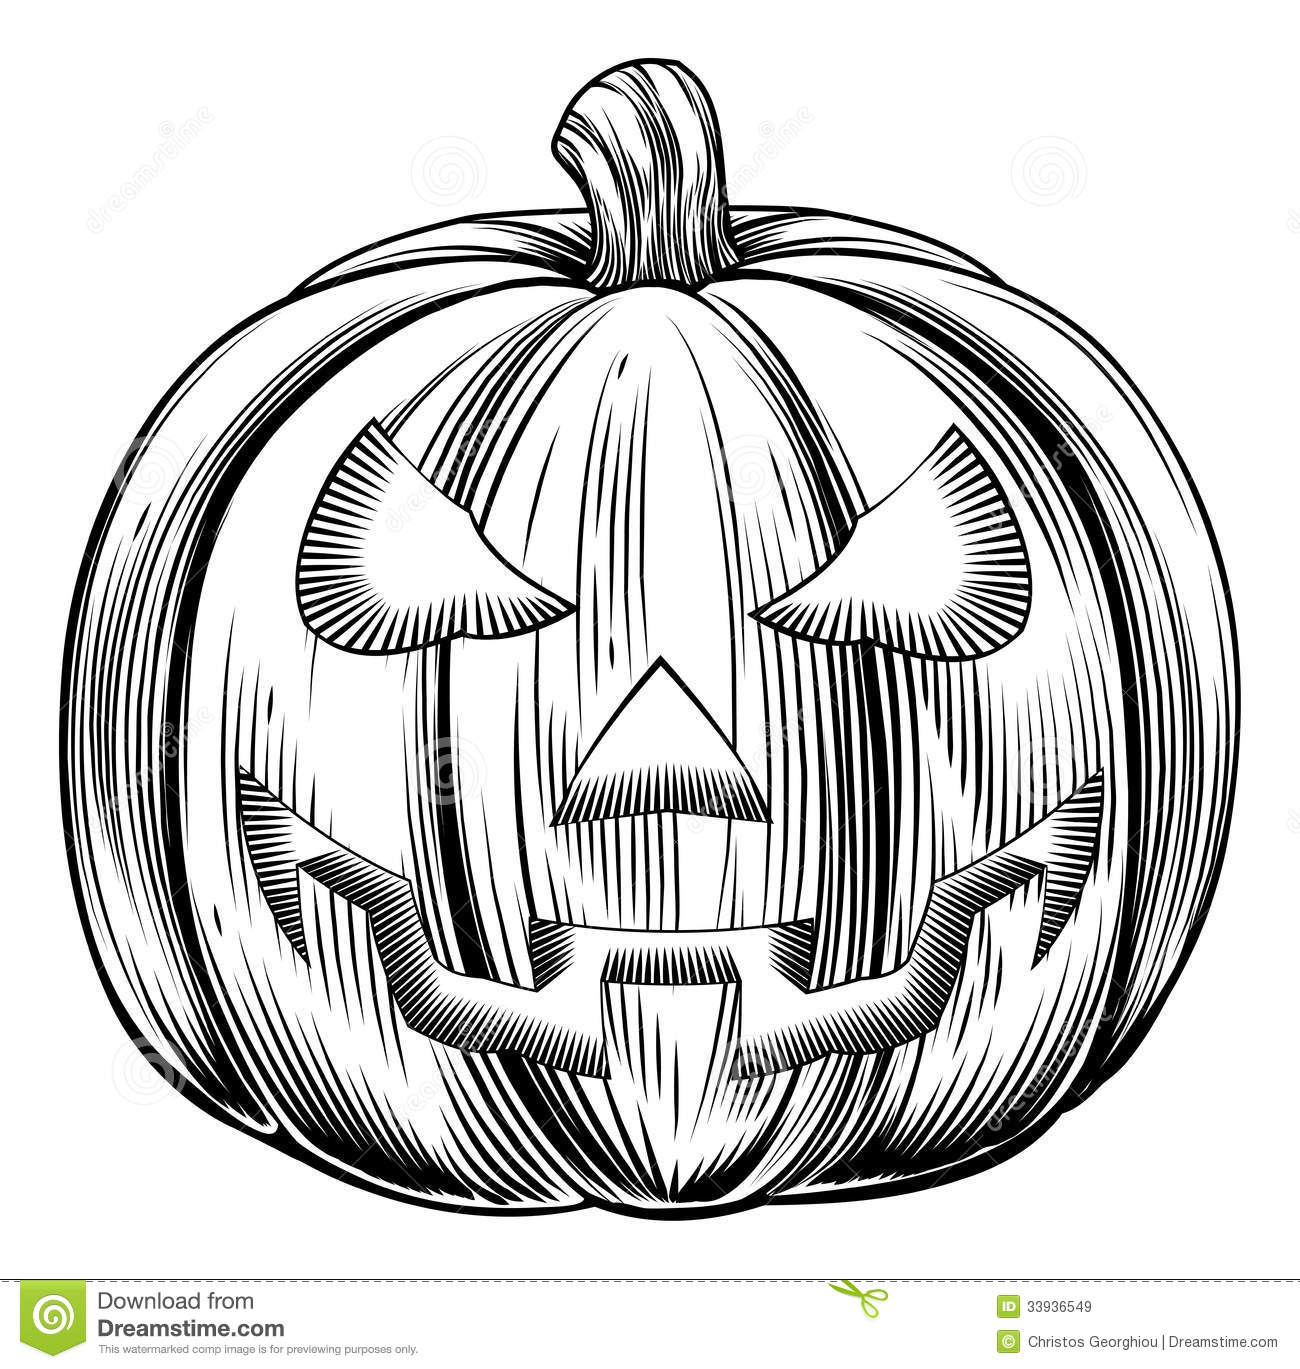 Classic Retro Illustration: Vintage Halloween Pumpkin Stock Vector. Image Of Print